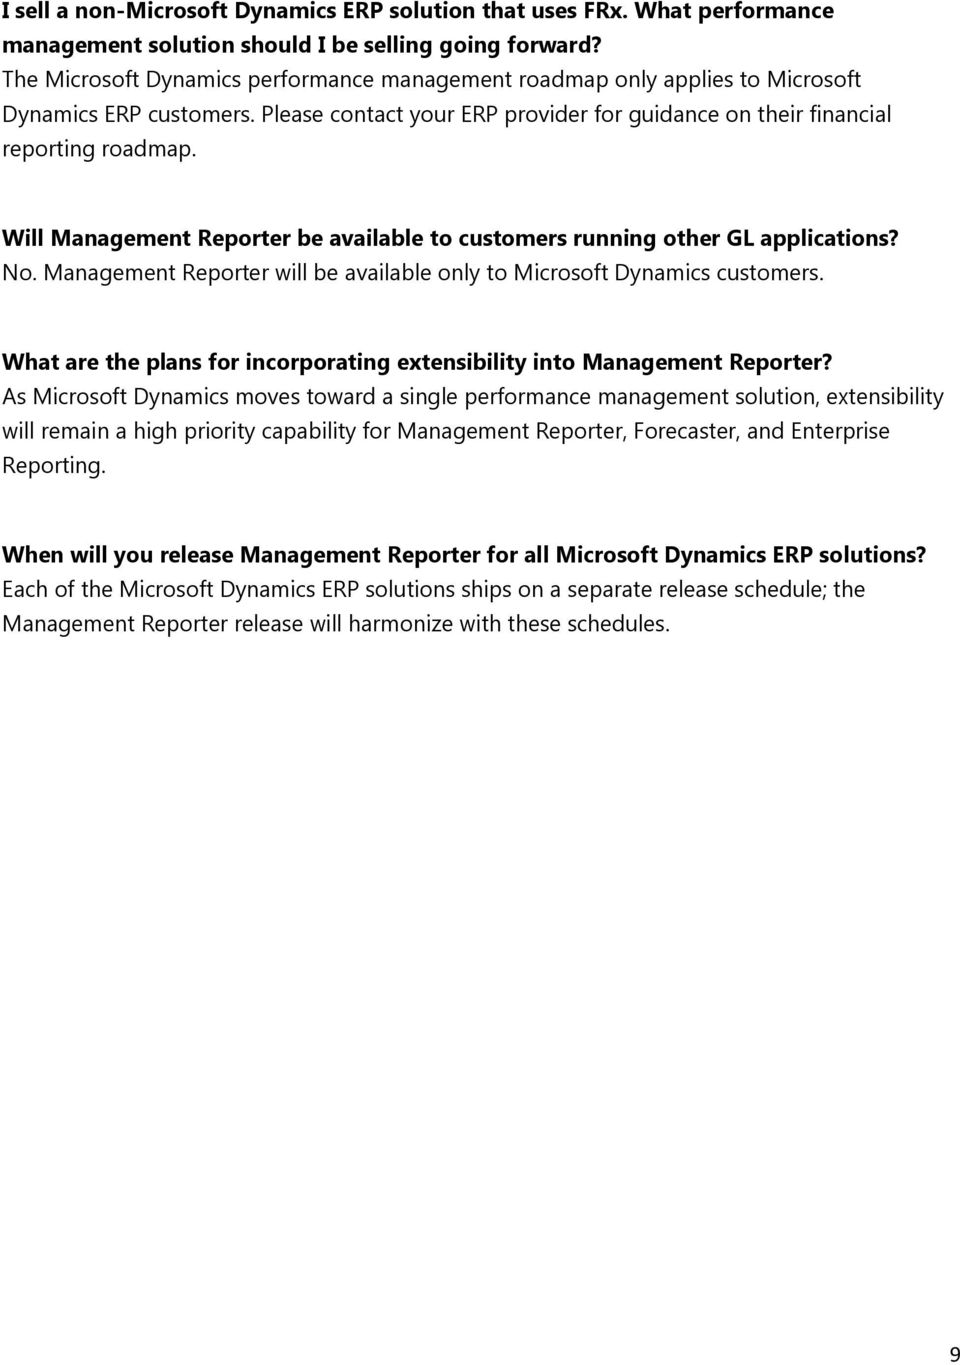 Will Management Reporter be available to customers running other GL applications? No. Management Reporter will be available only to Microsoft Dynamics customers.